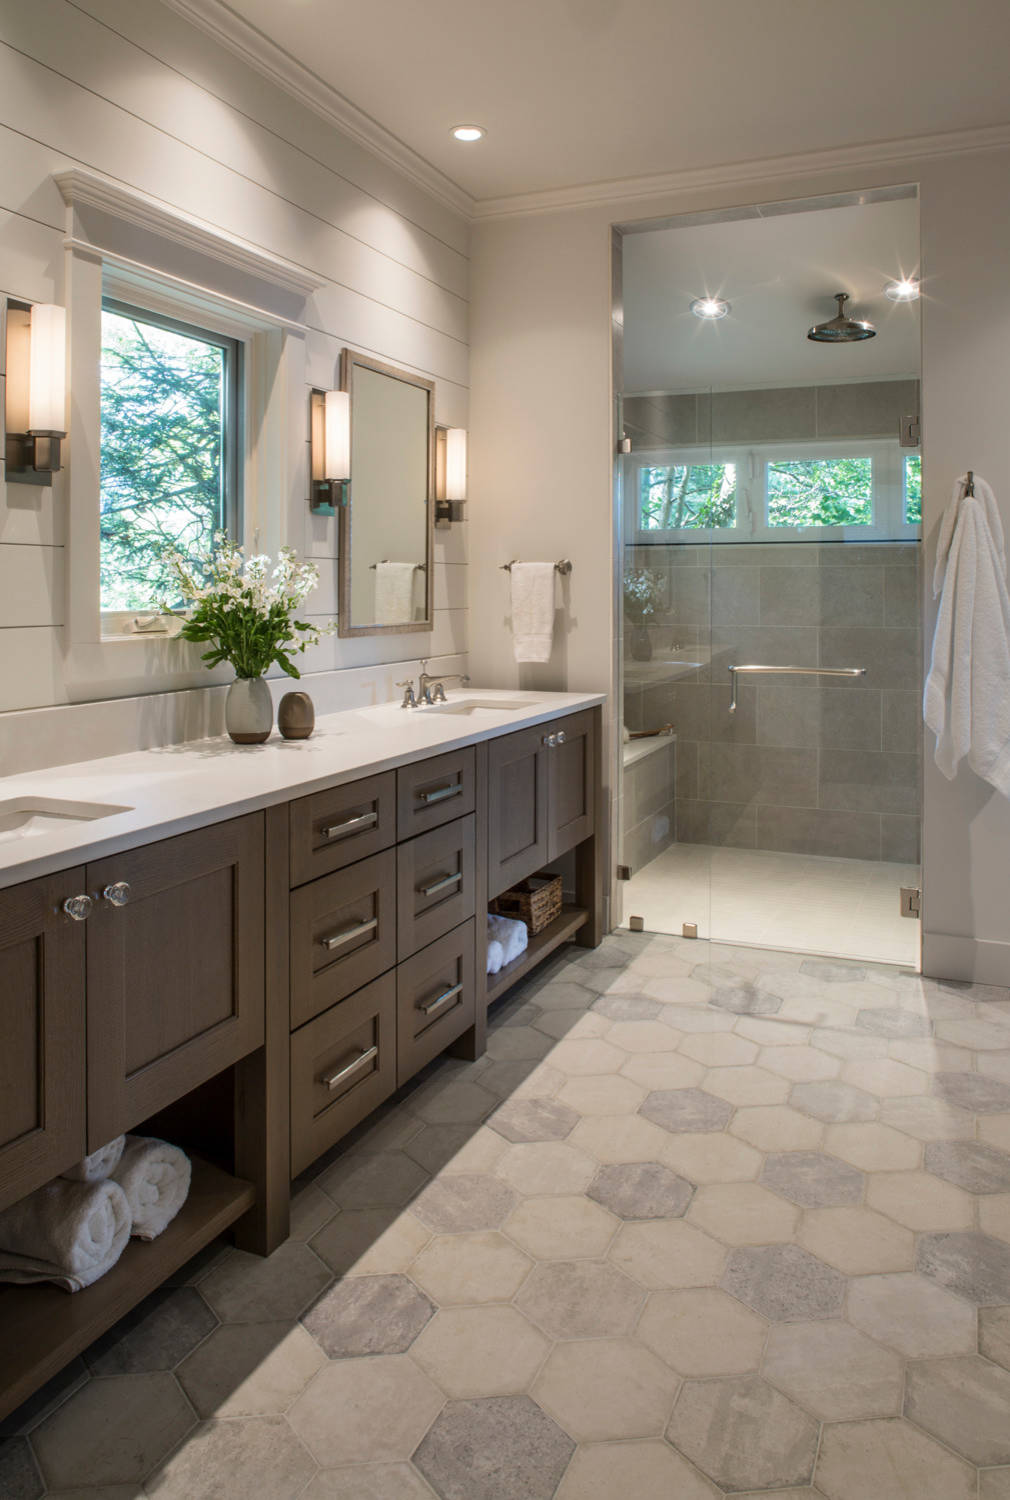 75 Beautiful Master Bathroom Pictures Ideas February 2021 Houzz